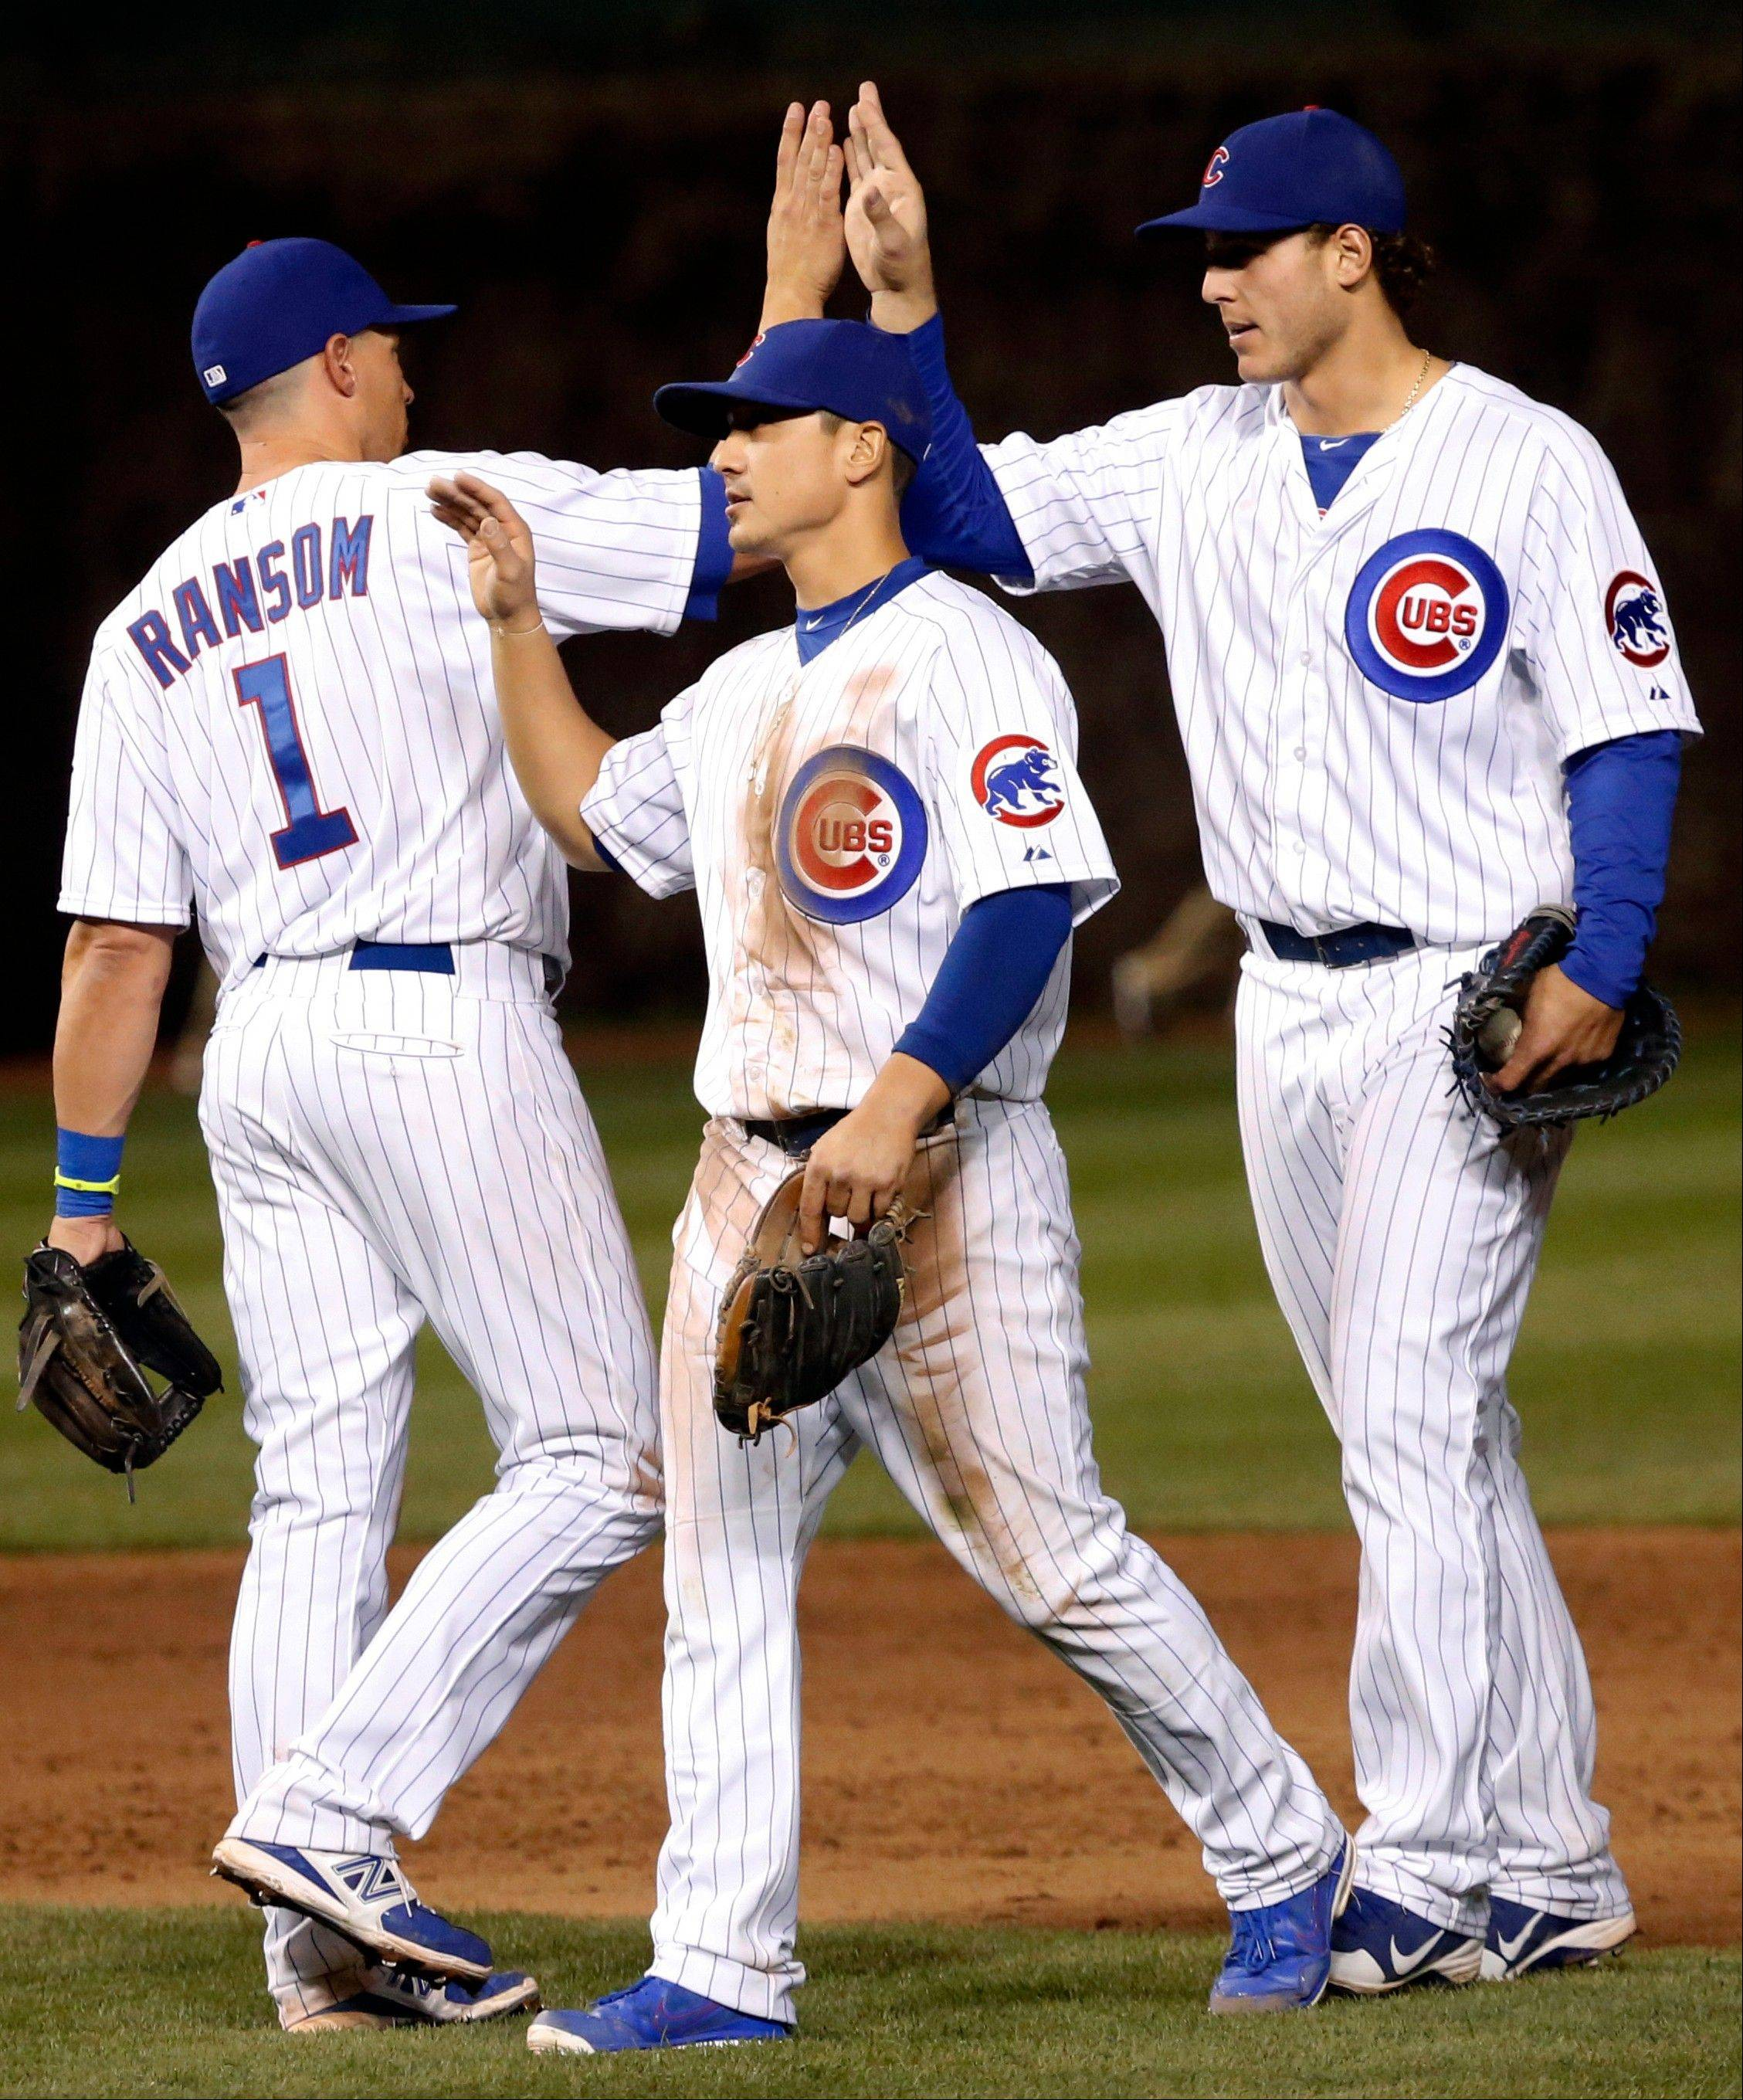 From left, Chicago Cubs third baseman Cody Ransom, second baseman Darwin Barney and first baseman Anthony Rizzo celebrate their 5-3 win over the San Diego Padres after a baseball game, Monday, April 29, 2013, in Chicago.